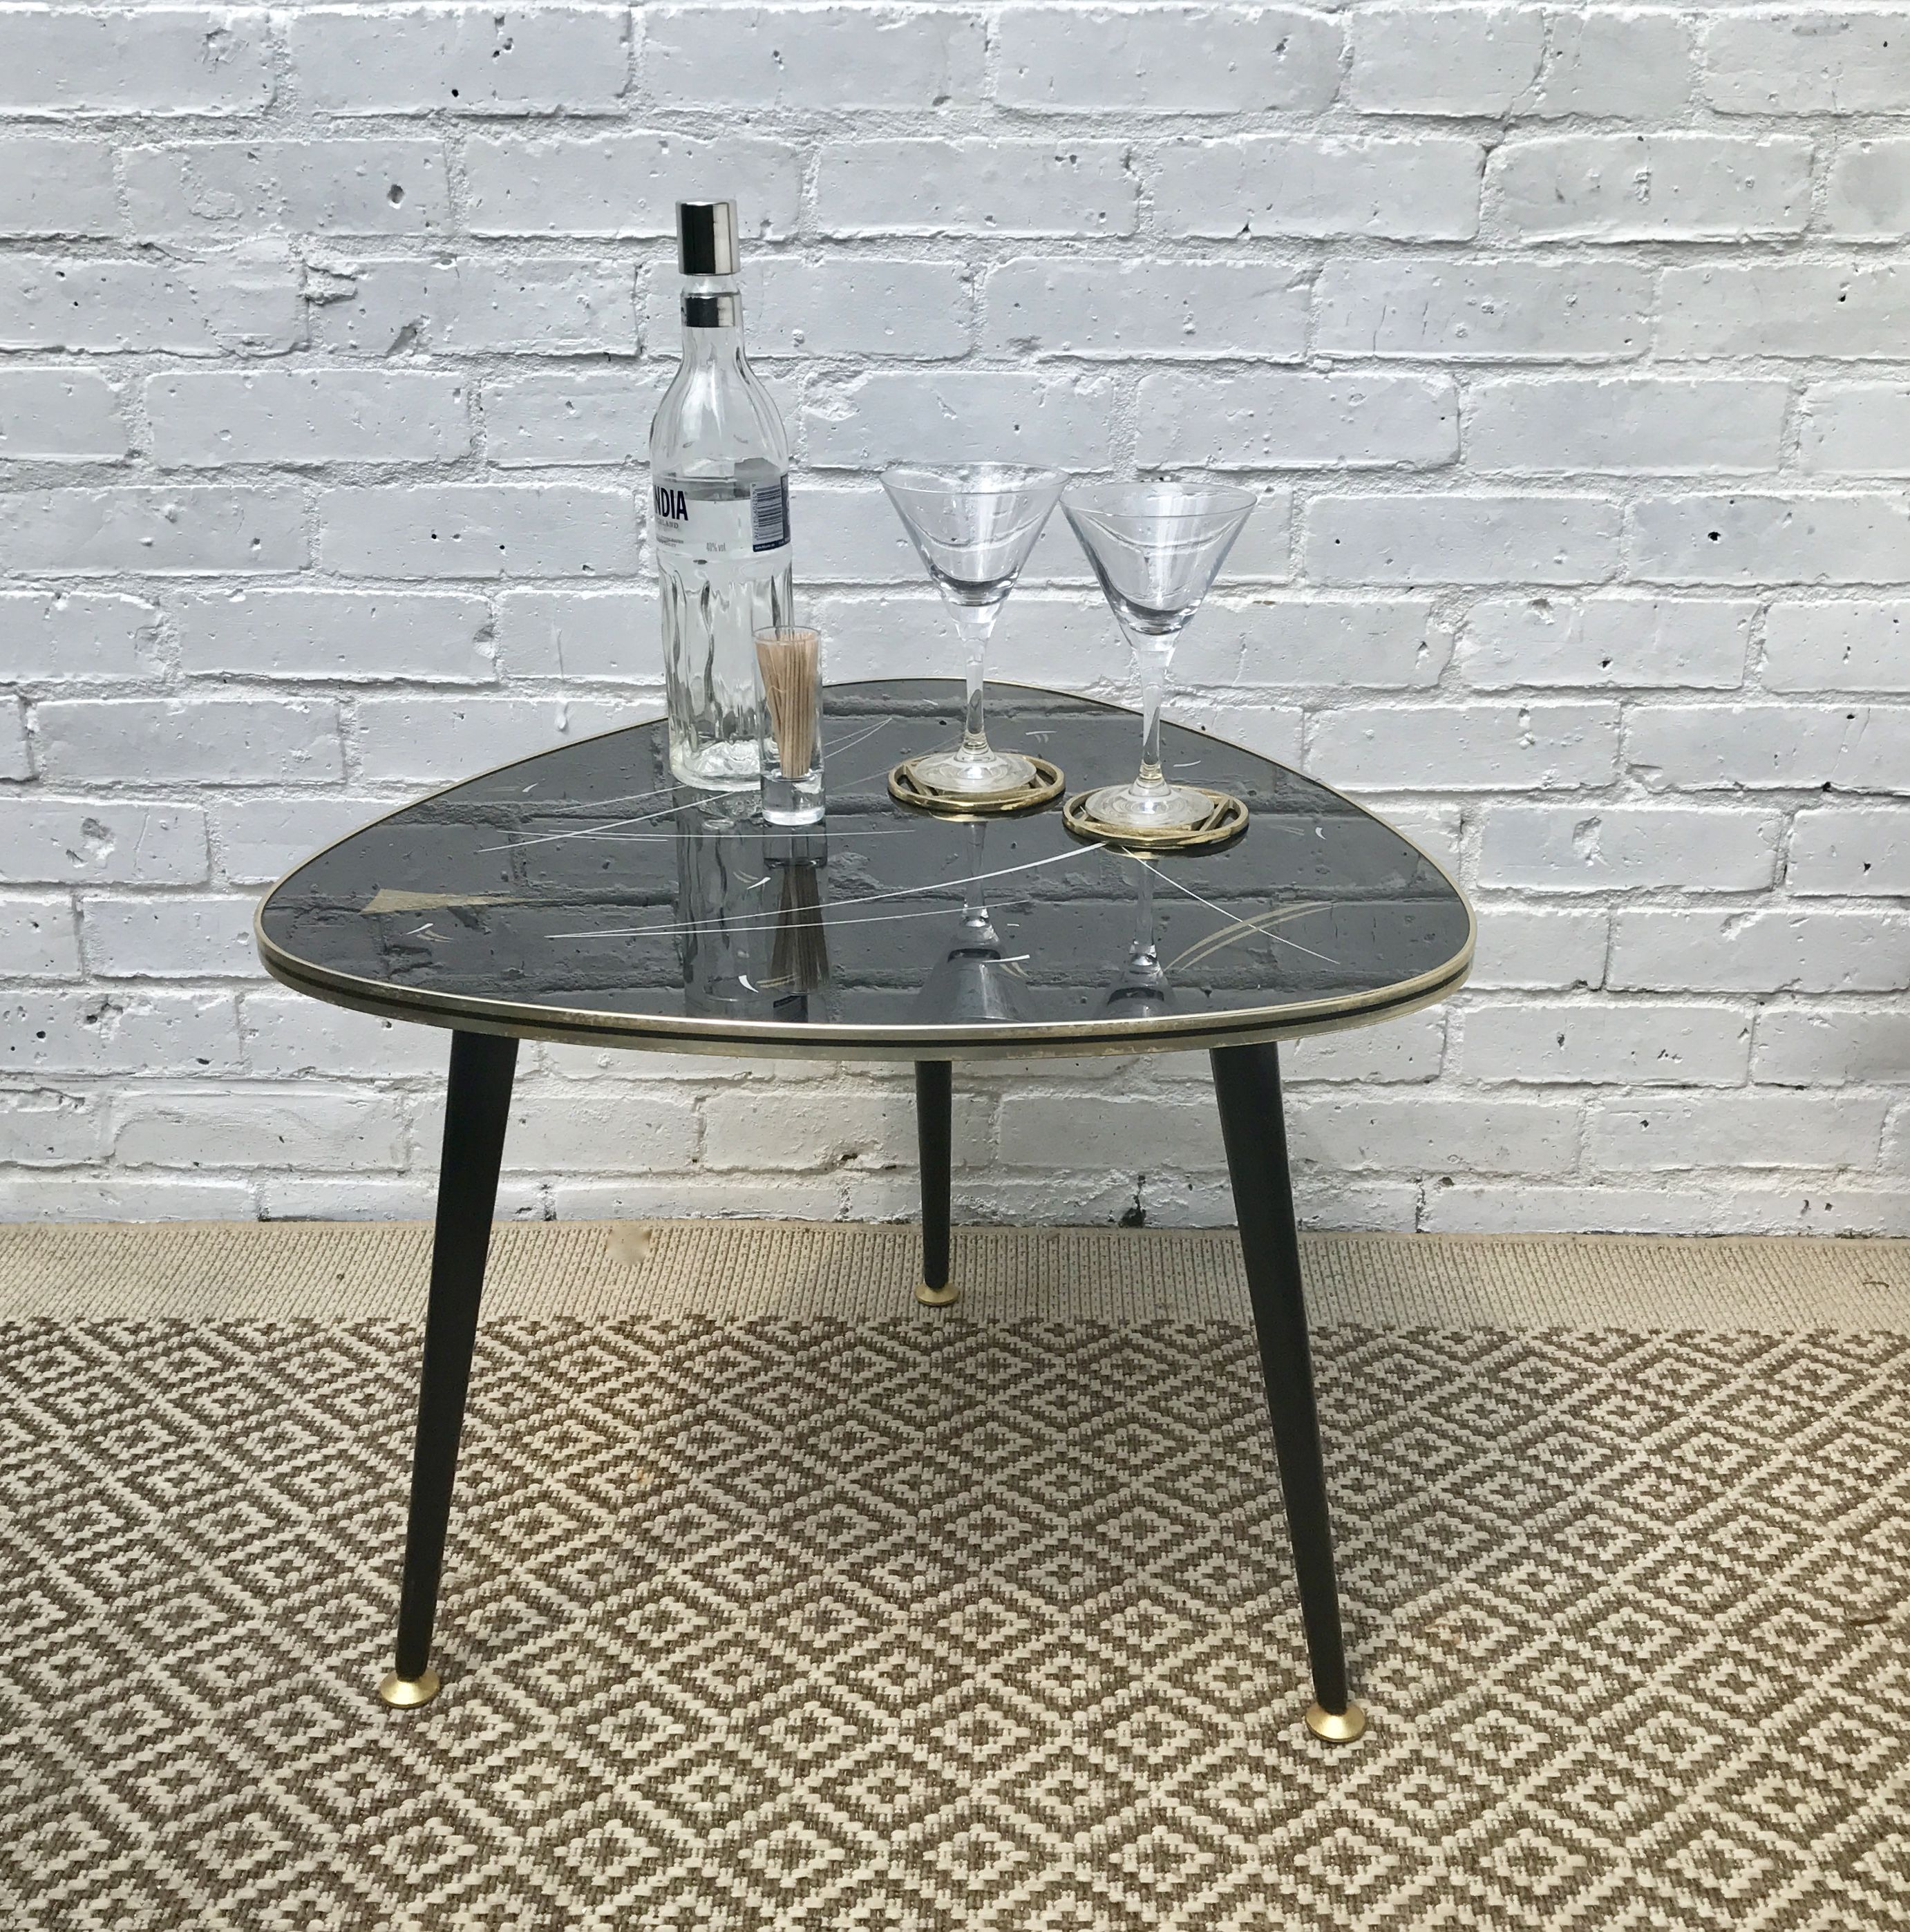 Retro 50s Triangle Shaped Coffee Table #198